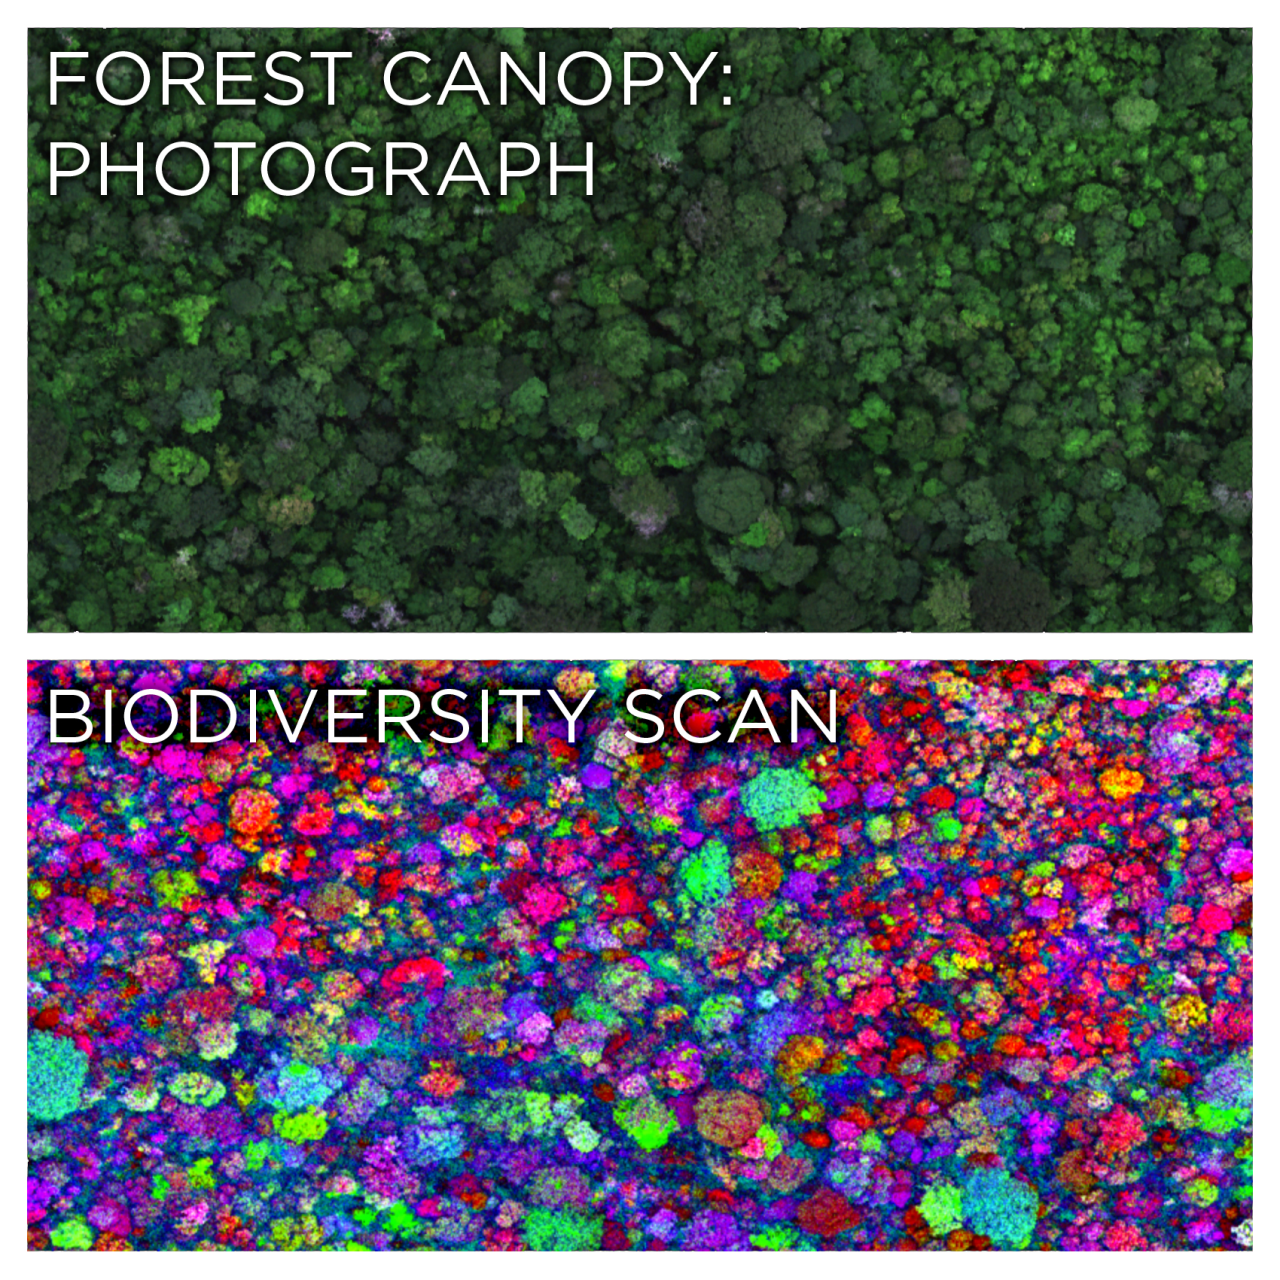 """npr :      skunkbear :     The top image is a photograph of a lush rainforest canopy. The bottom image colors each tree based on its species.   How? It's all thanks to a special lab built by  ecologist Greg Asner inside a twin-turboprop airplane. From a few thousand feet up, the Carnegie Airborne Observatory uses lasers, spectrometers and other instruments to build a detailed 3-D model of a forest,  identify different species of vegetation  and quantify carbon sequestration. It's a lot quicker than tramping through the jungle and taking these measurements on foot.   A fun tidbit from  the full story : """"On one occasion, he and his team mapped more than 6,500 square miles of the Colombian Amazon at night — about the size of Connecticut plus Rhode Island — flying with all their lights out to  avoid being shot at by the FARC, the Colombian rebel force. """"   Images: Greg Asner, Carnegie Airborne Observatory      I've heard a lot about the biodiversity of the rainforest, but I've never had the opportunity to see it in such stunning colors! - Tajha      Amazing"""